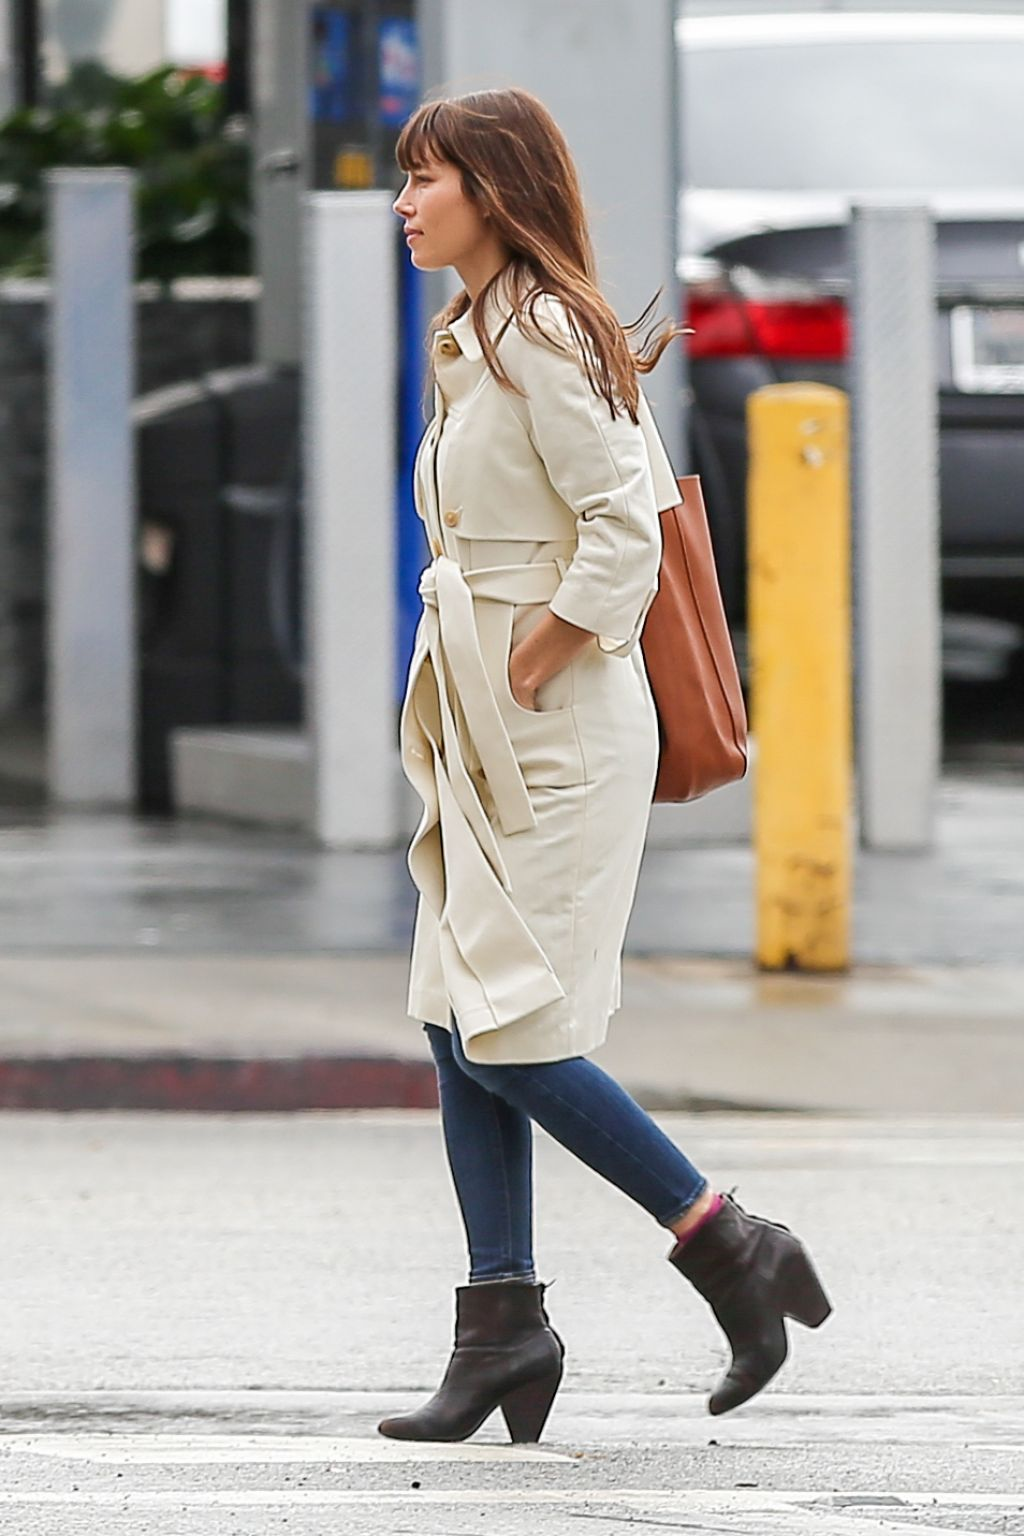 Jessica biel went out for a lunch in santa monica 262019 nude (36 photo), Instagram Celebrites images